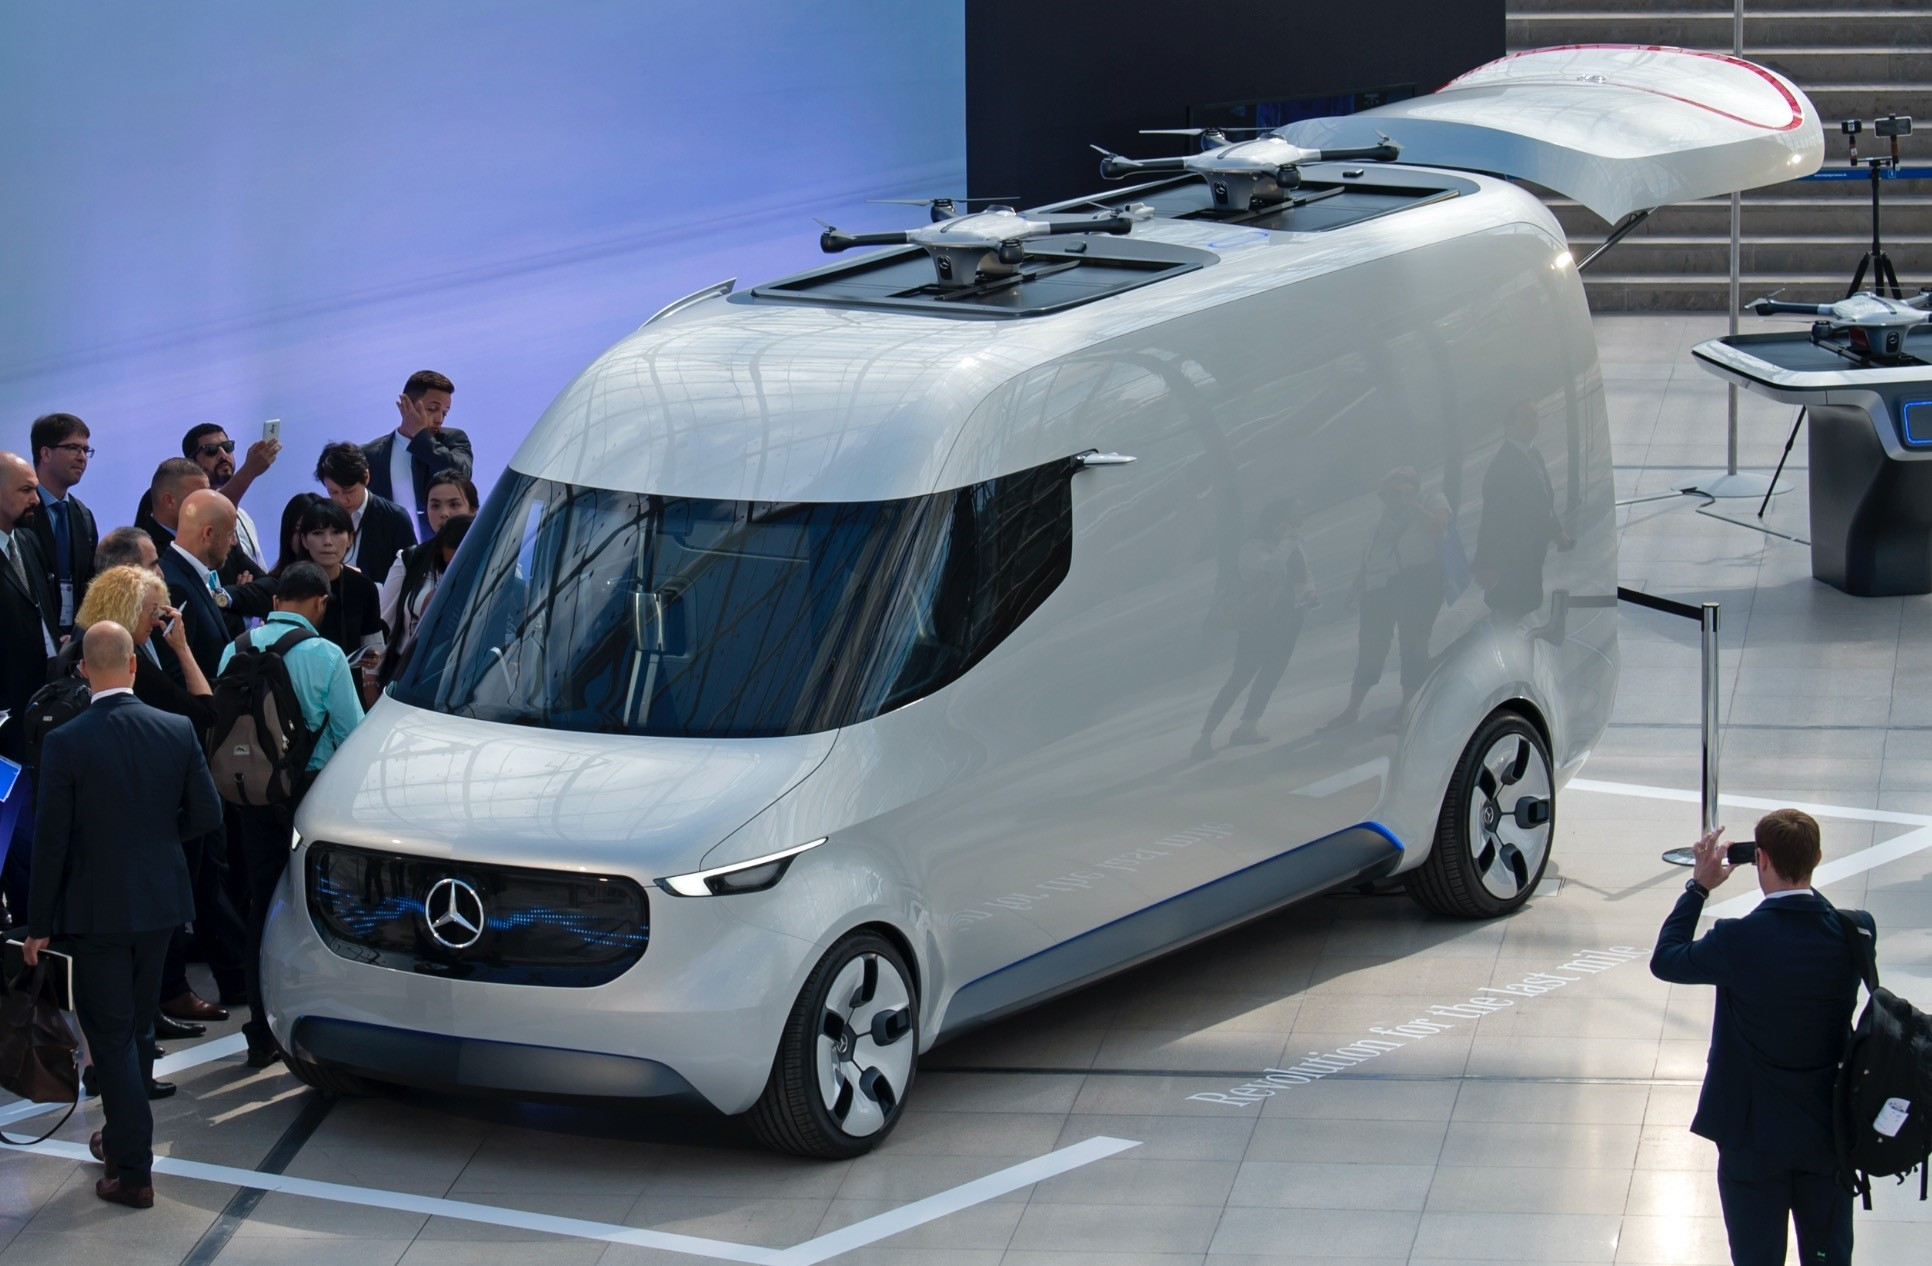 Visitors stand around the Matternet Drone-equipped delivery van , Mercedes Vision Van, at the International Transport Forum 2017 in Leipzig.